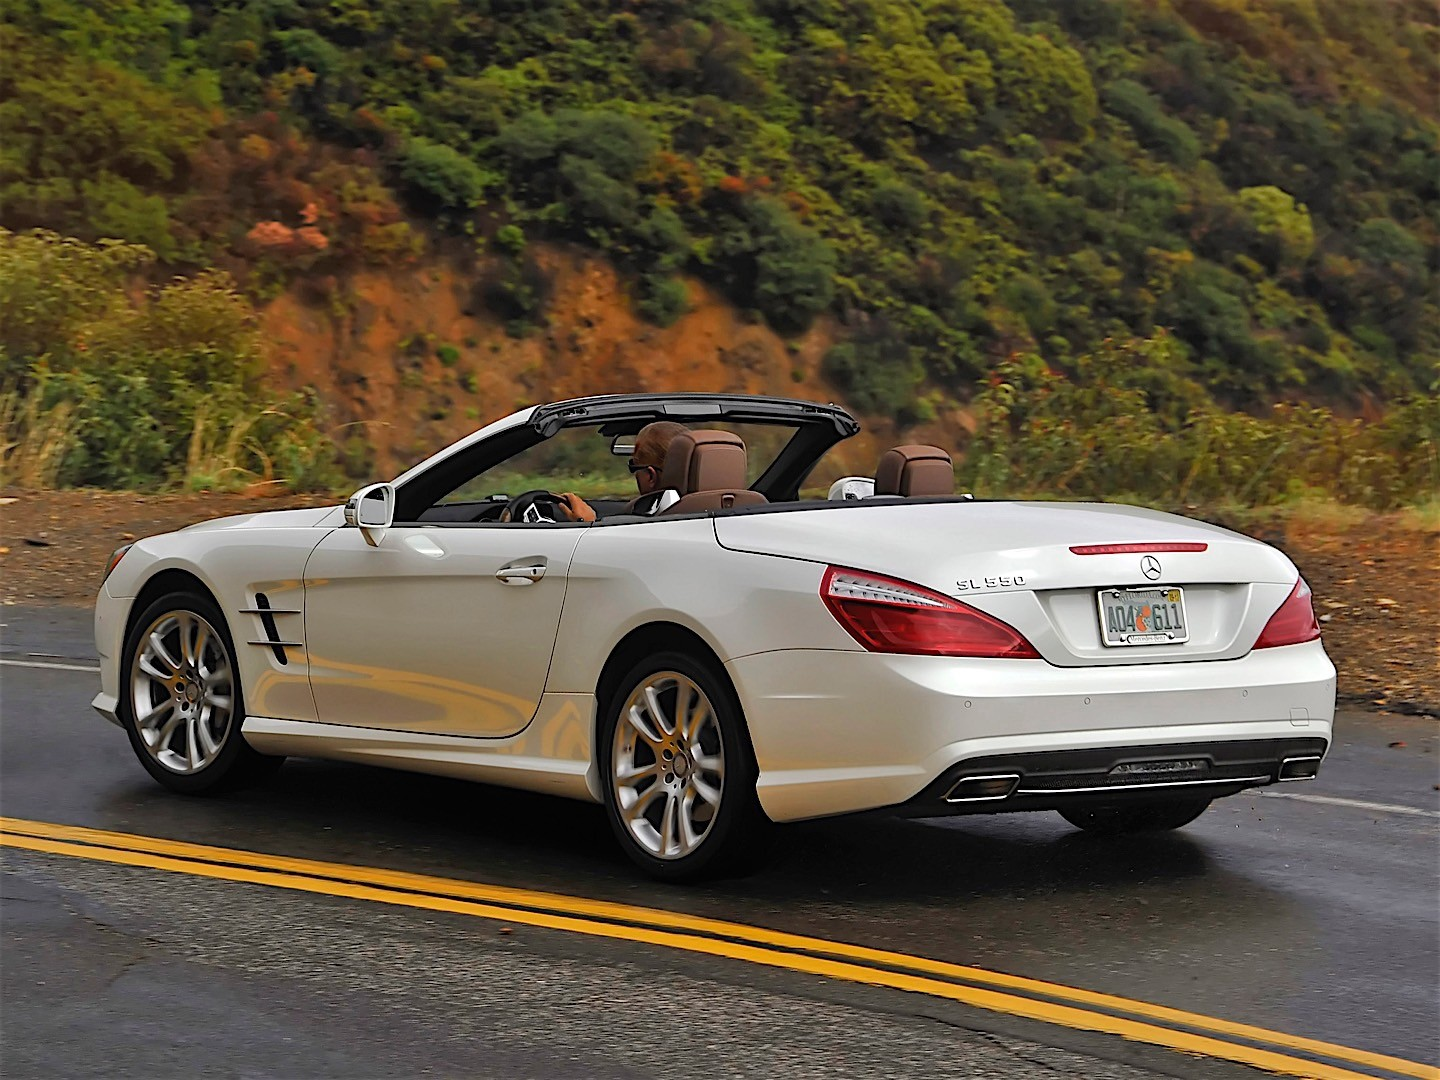 mercedes benz sl klasse r231 specs 2012 2013 2014. Black Bedroom Furniture Sets. Home Design Ideas